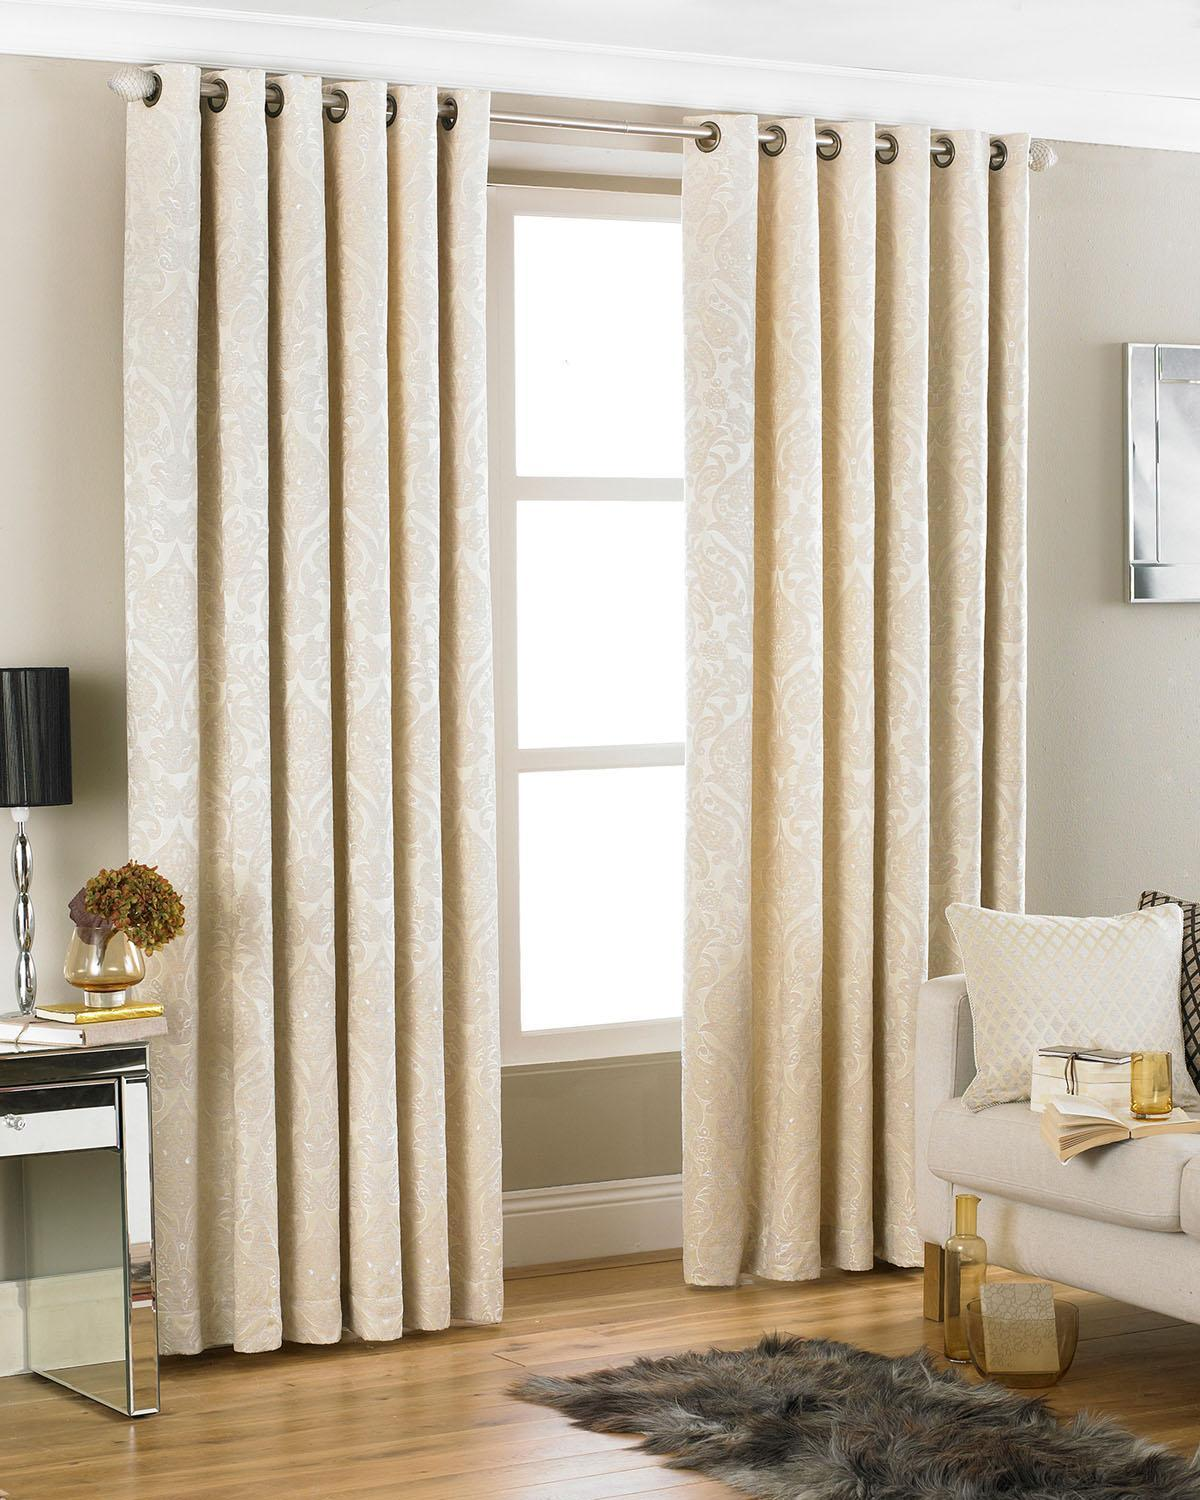 Riva Ready Made Curtains  Firenze Ready Made Eyelet Curtains Cream